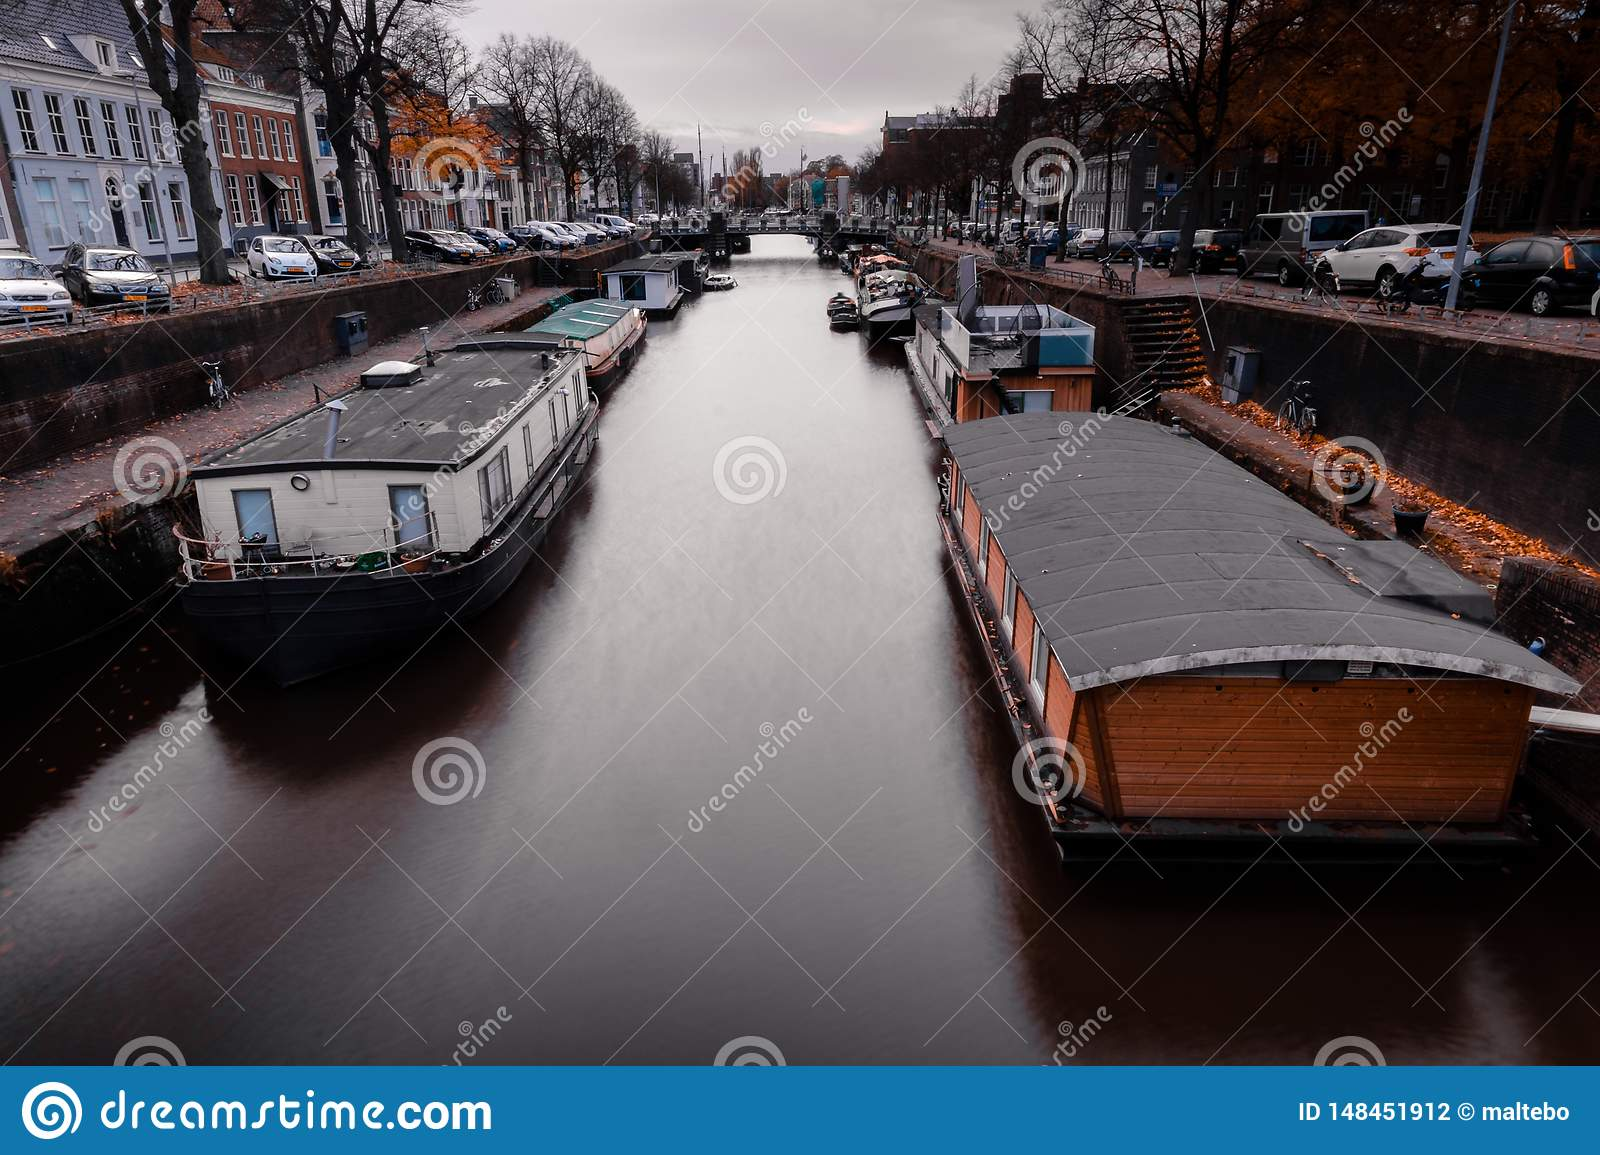 House boats on a canal in the Netherlands